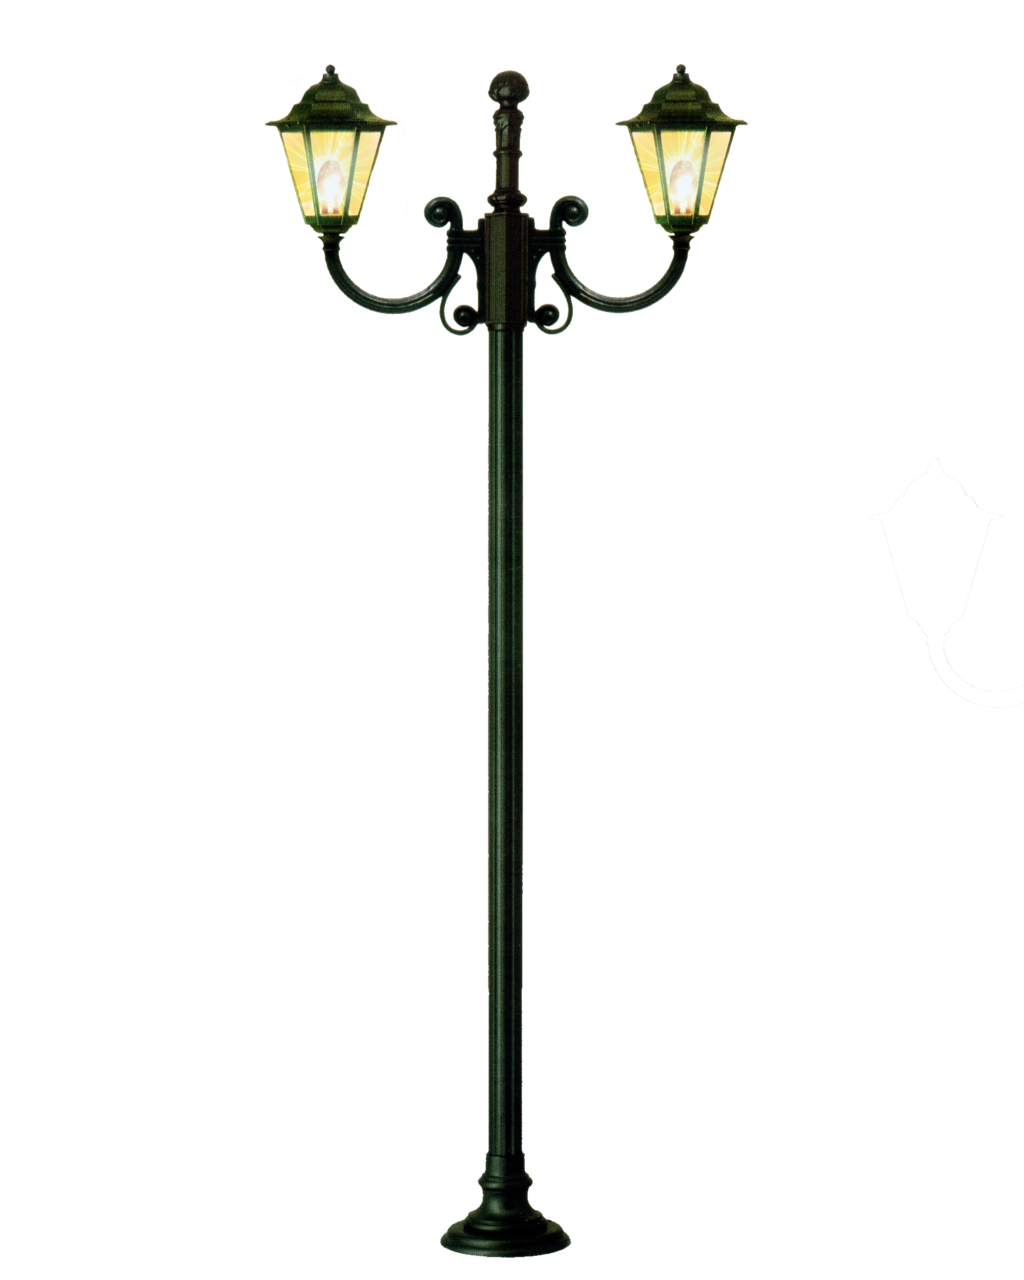 Png Lamp By Moonglowlilly On Deviantart Street Light Lamp Street Lamp